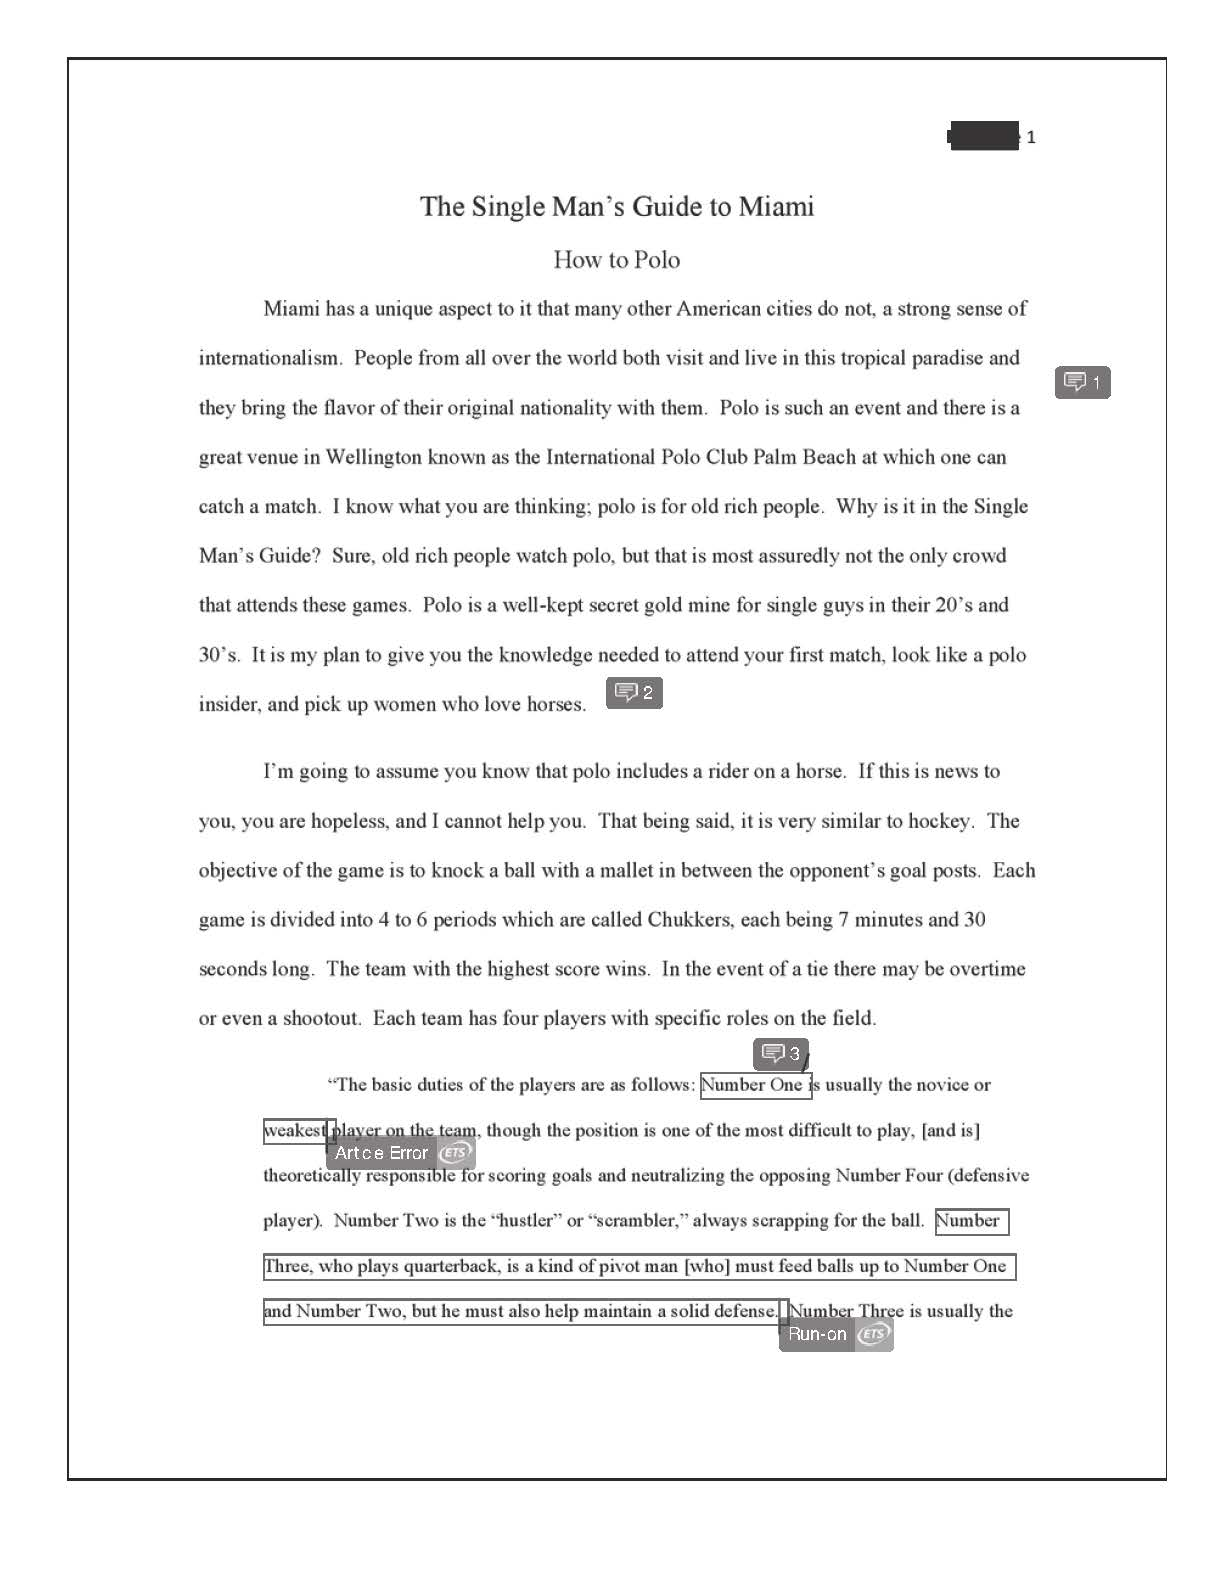 024 How To Write An Interview Essay Example Informative Final Polo Redacted Page 2 Excellent Paper In Apa Format Introduction Full